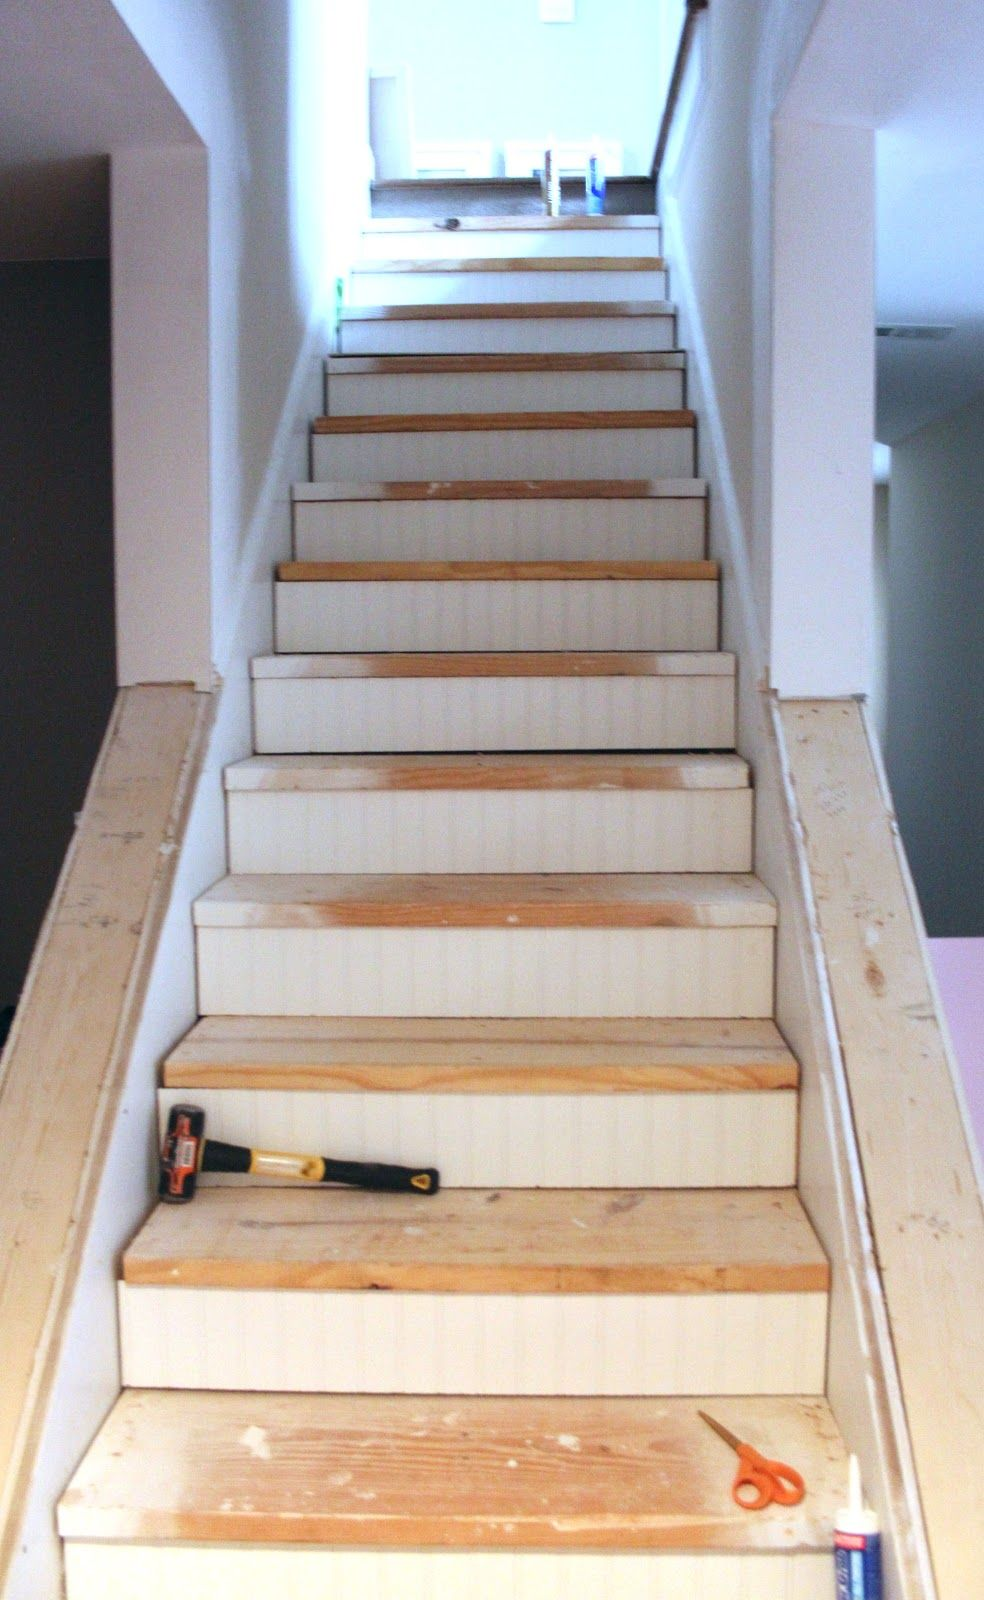 Inexpensive Basement Finishing Ideas My Enroute Life: Ugly Basement Stairs Update | My House